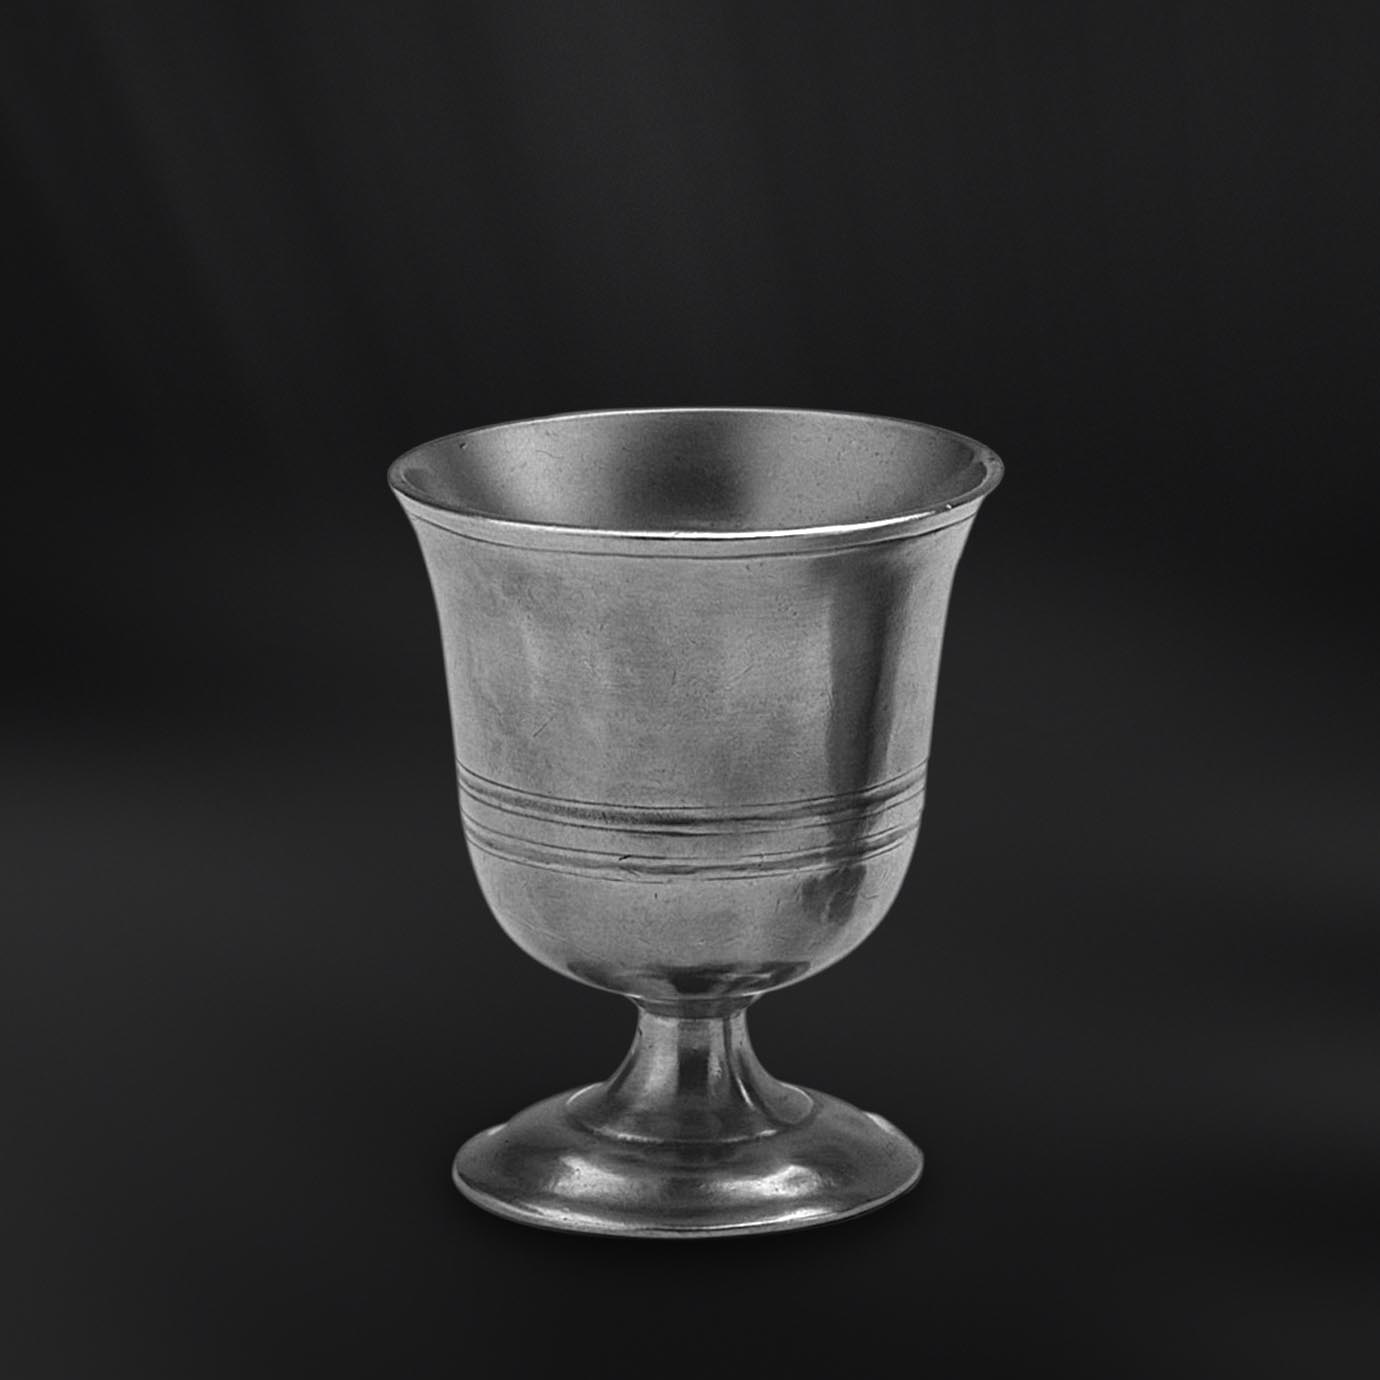 GOBELET TIMBALE CALICE etain antique